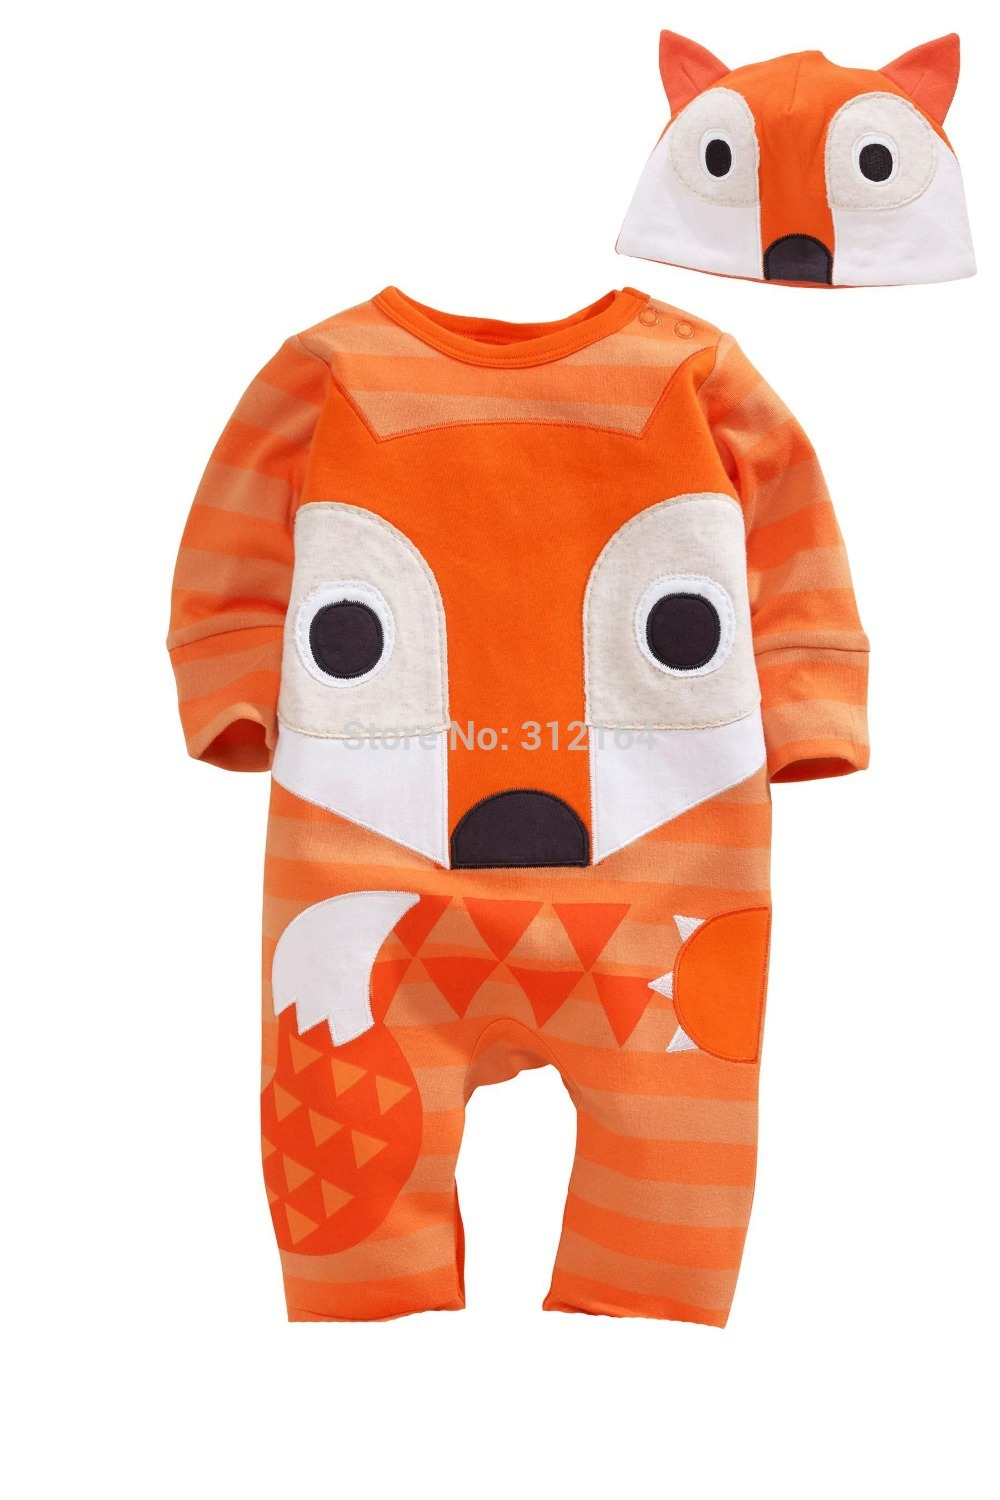 3d2f0103df94 Bosudhsou NEW Baby Children Clothing Baby Girl Infant Costume ...